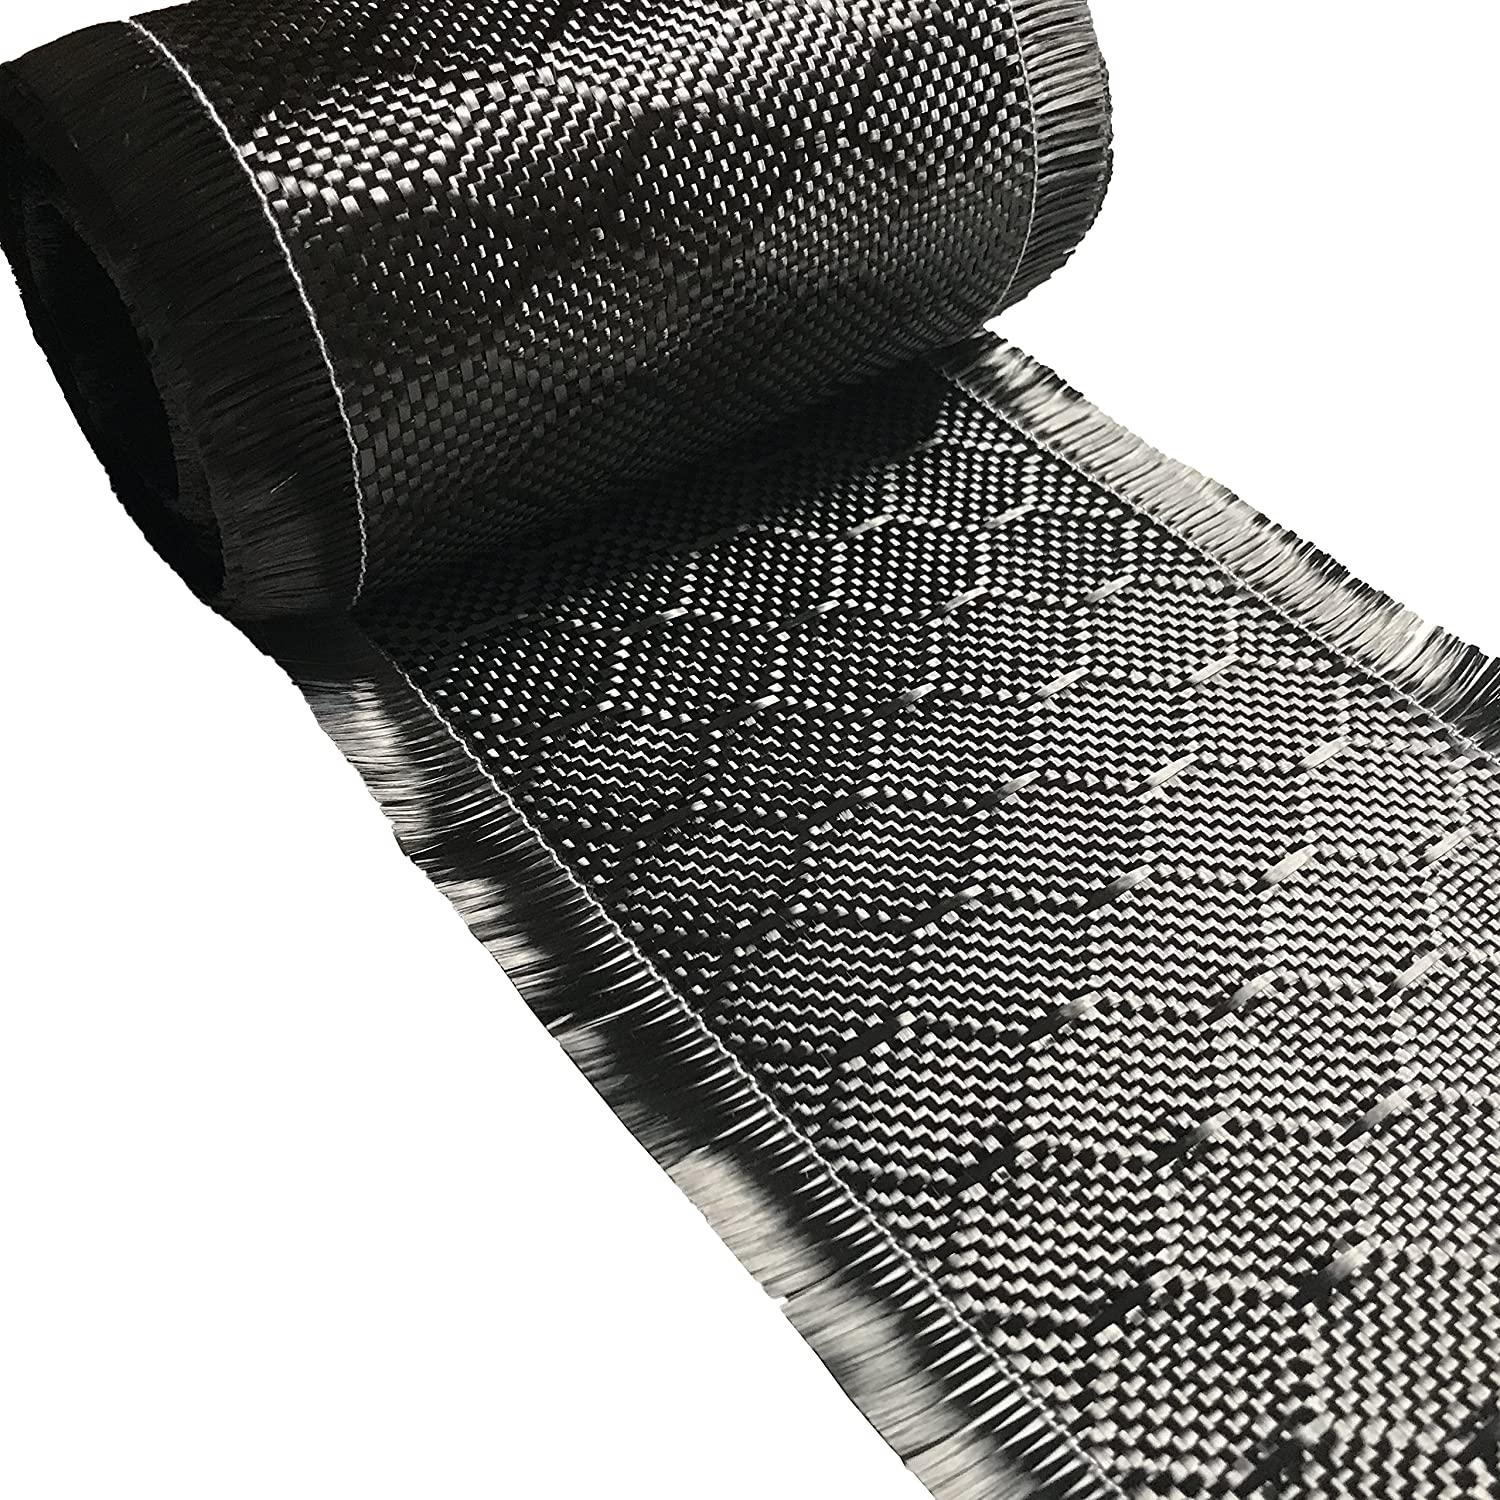 12 in x 5 FT Courier shipping free shipping - Bee Hive Ranking TOP12 WEAVE-3K FABRIC-2x2 CARBON Twill FIBER